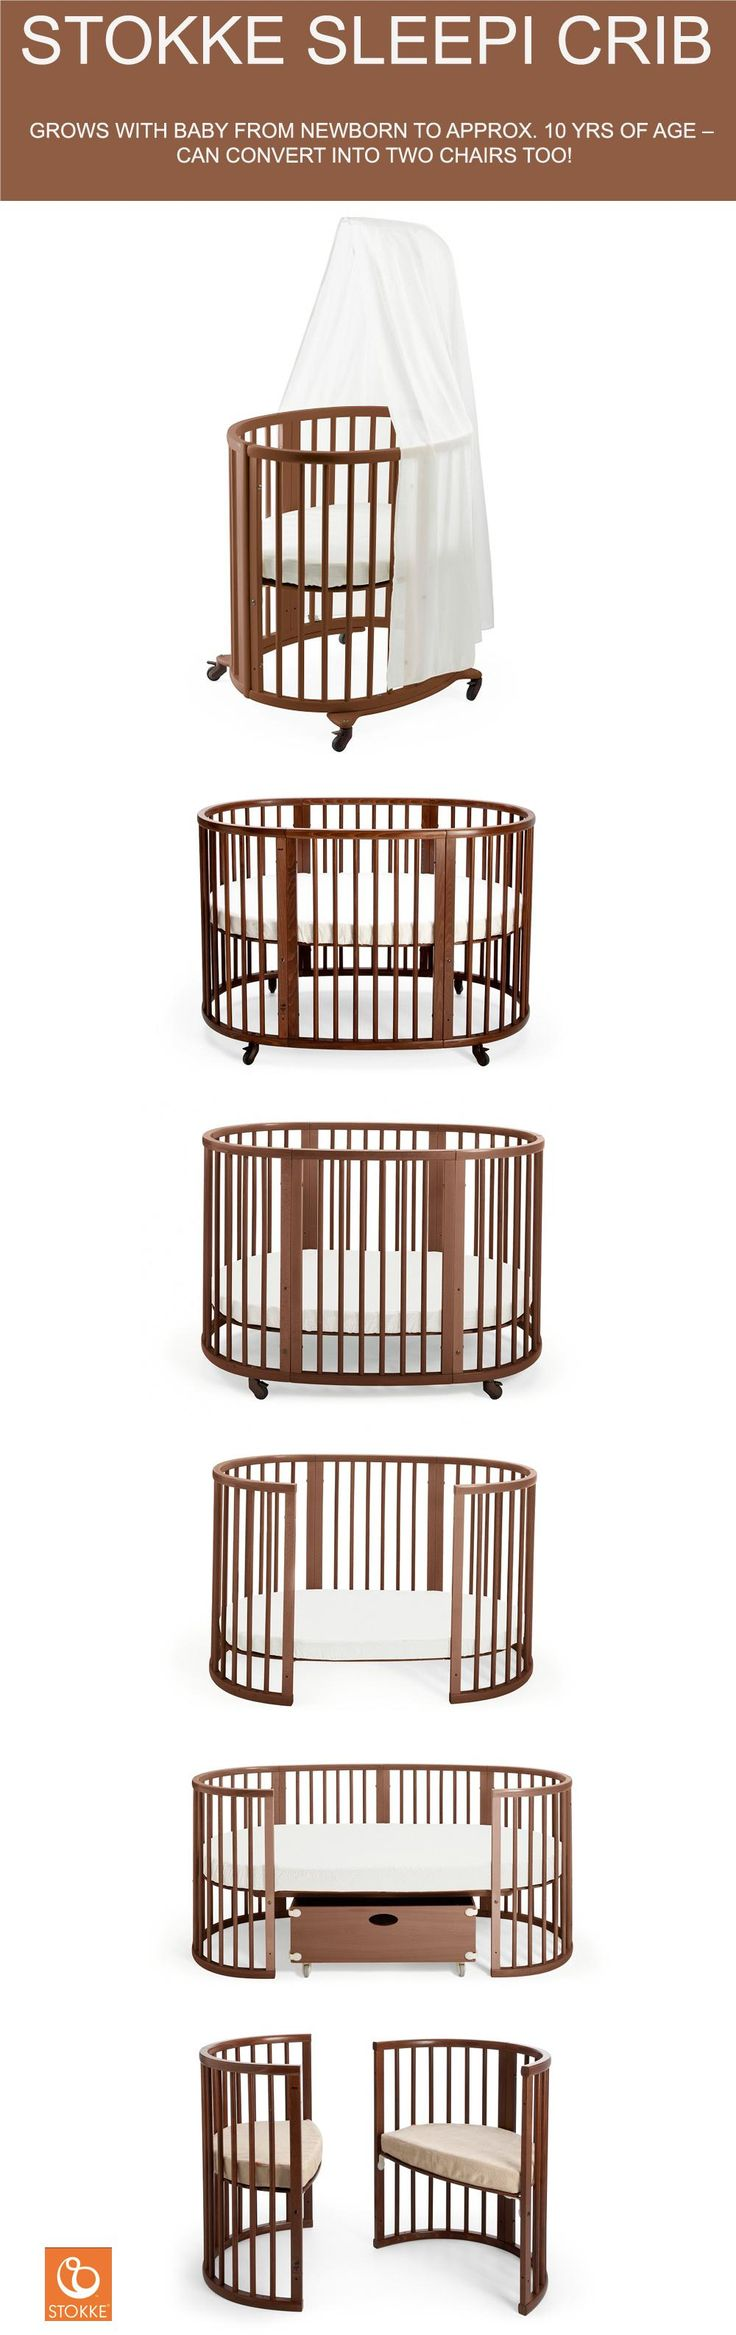 Stokke Sleepi Convertible Crib grows with your child – comes in white, natural & walnut wood, 100% beech wood, sustainable and modern design for your baby